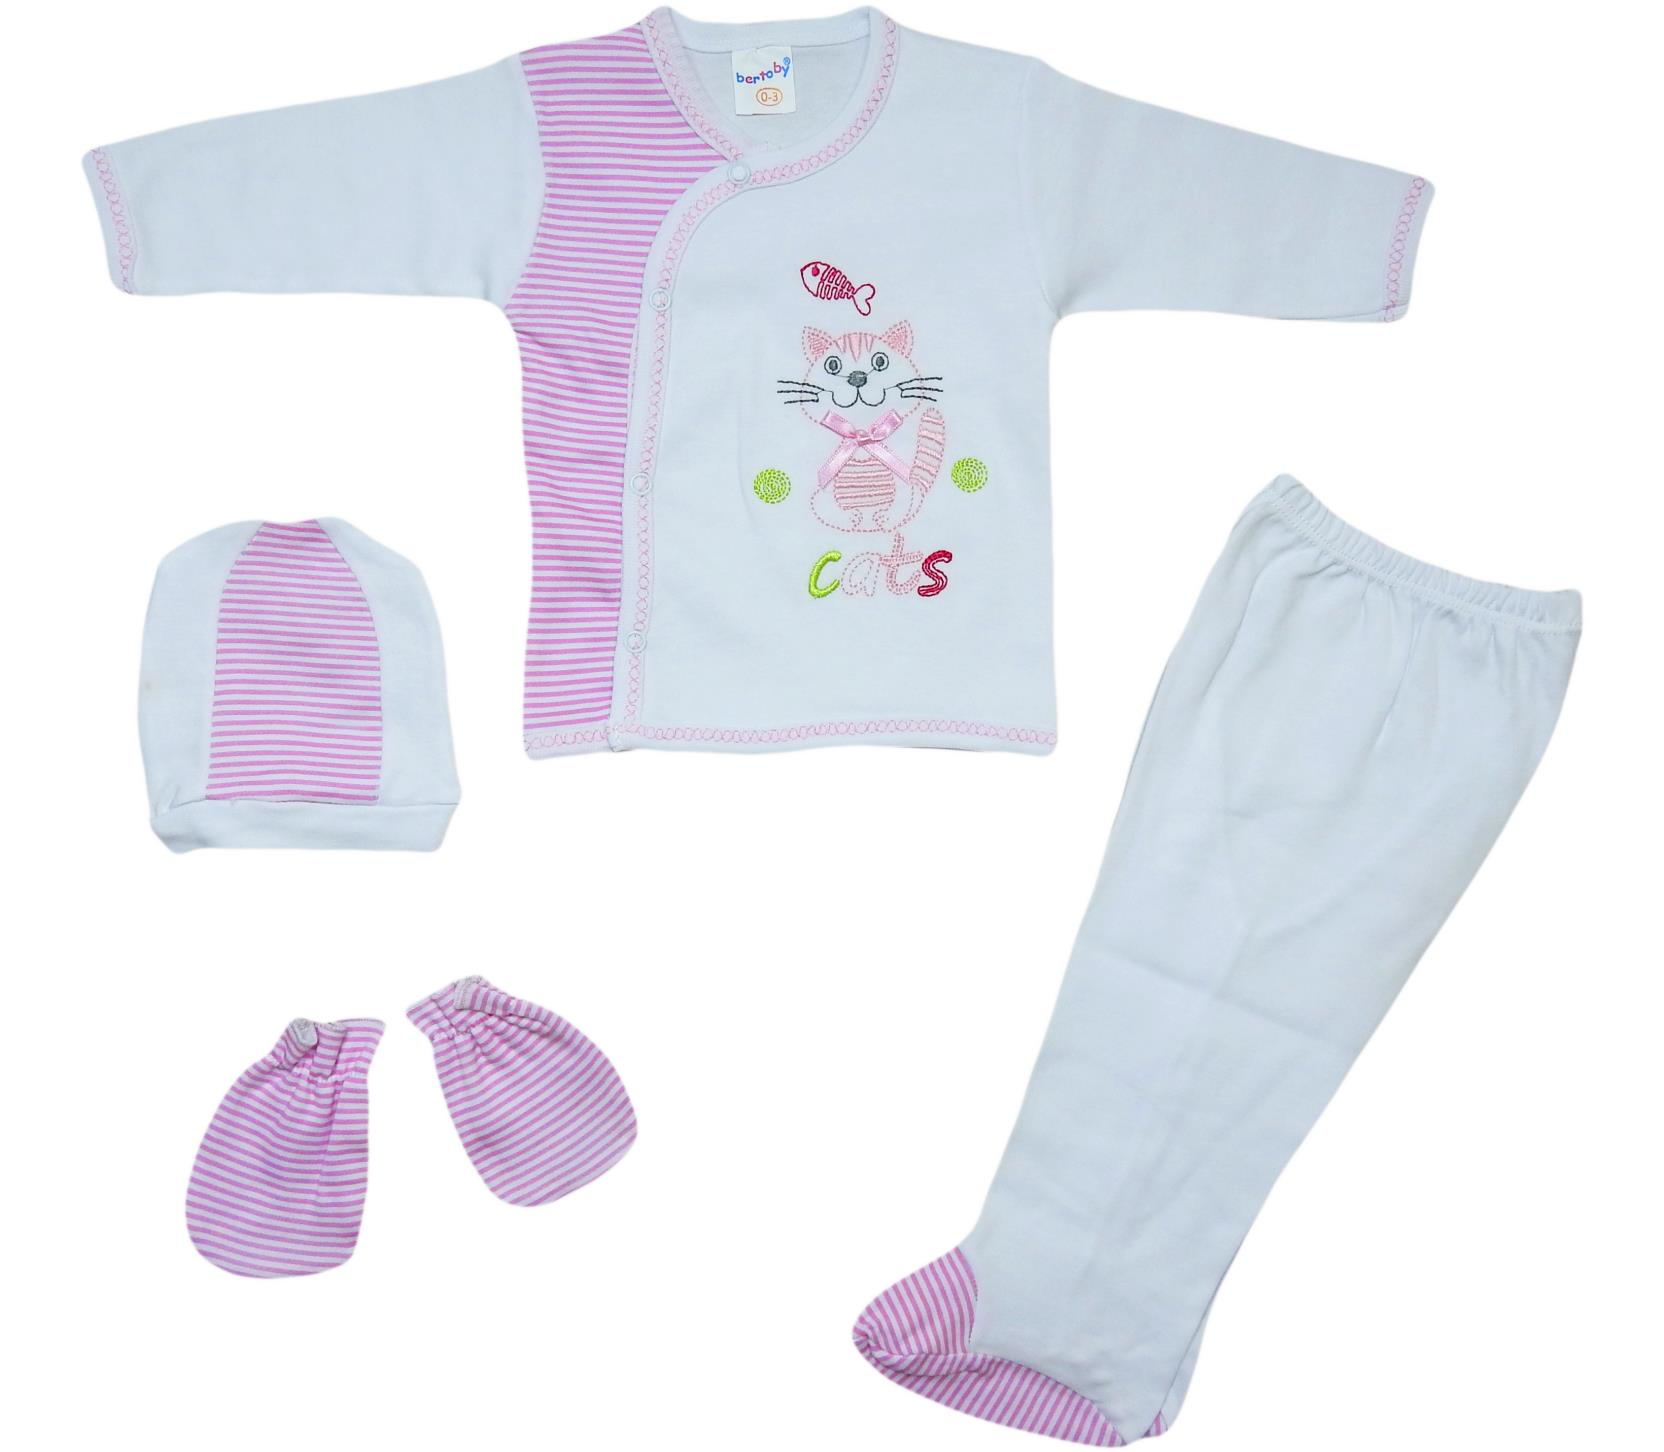 BERTO-479 wholesale baby sets of 4 subject to newborn to 0-3 months